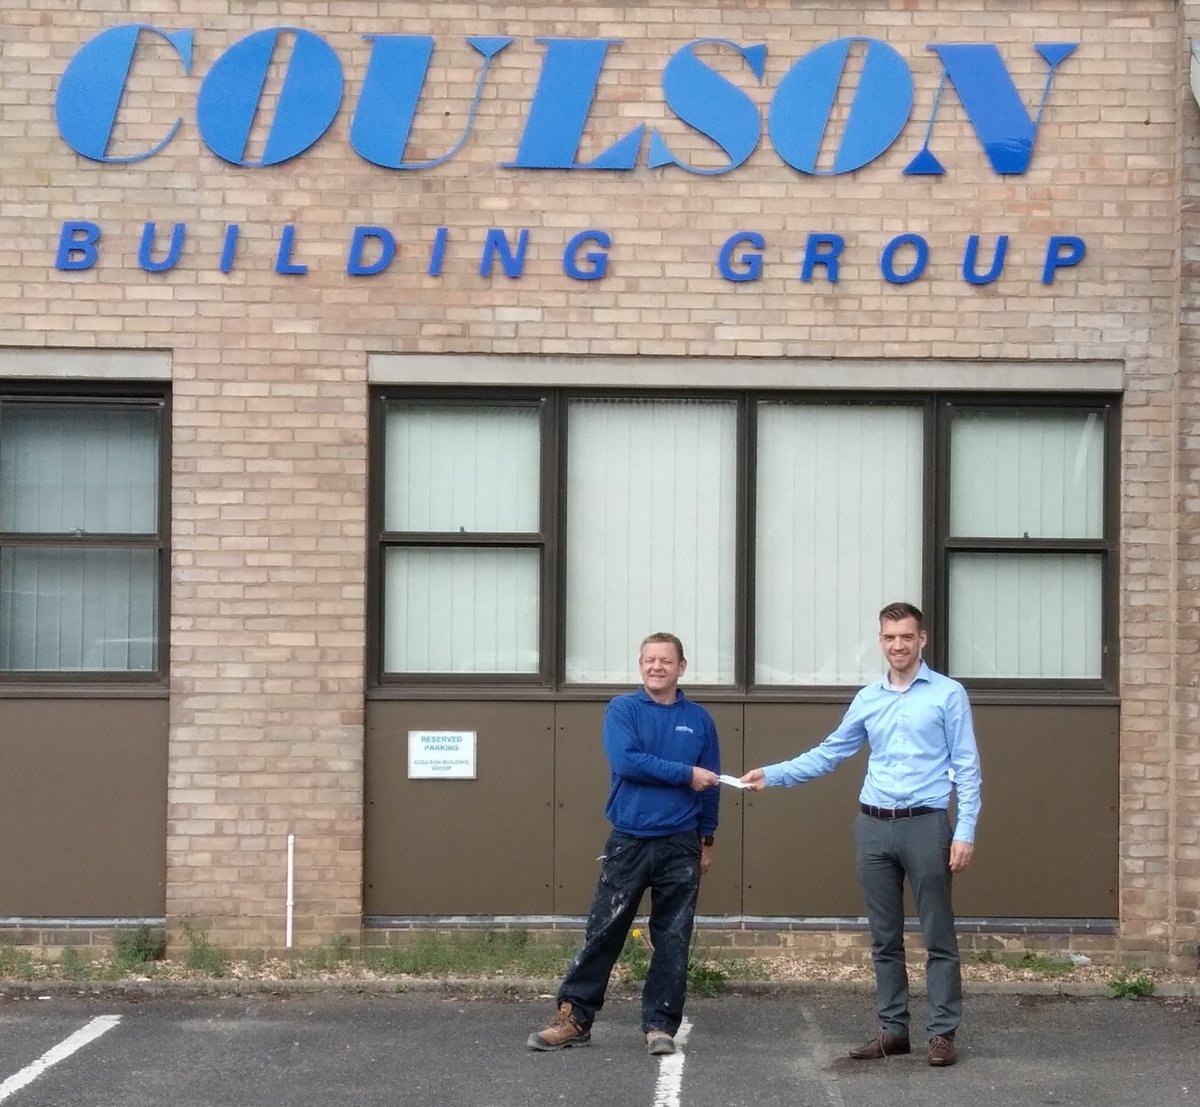 Coulson_Group photo